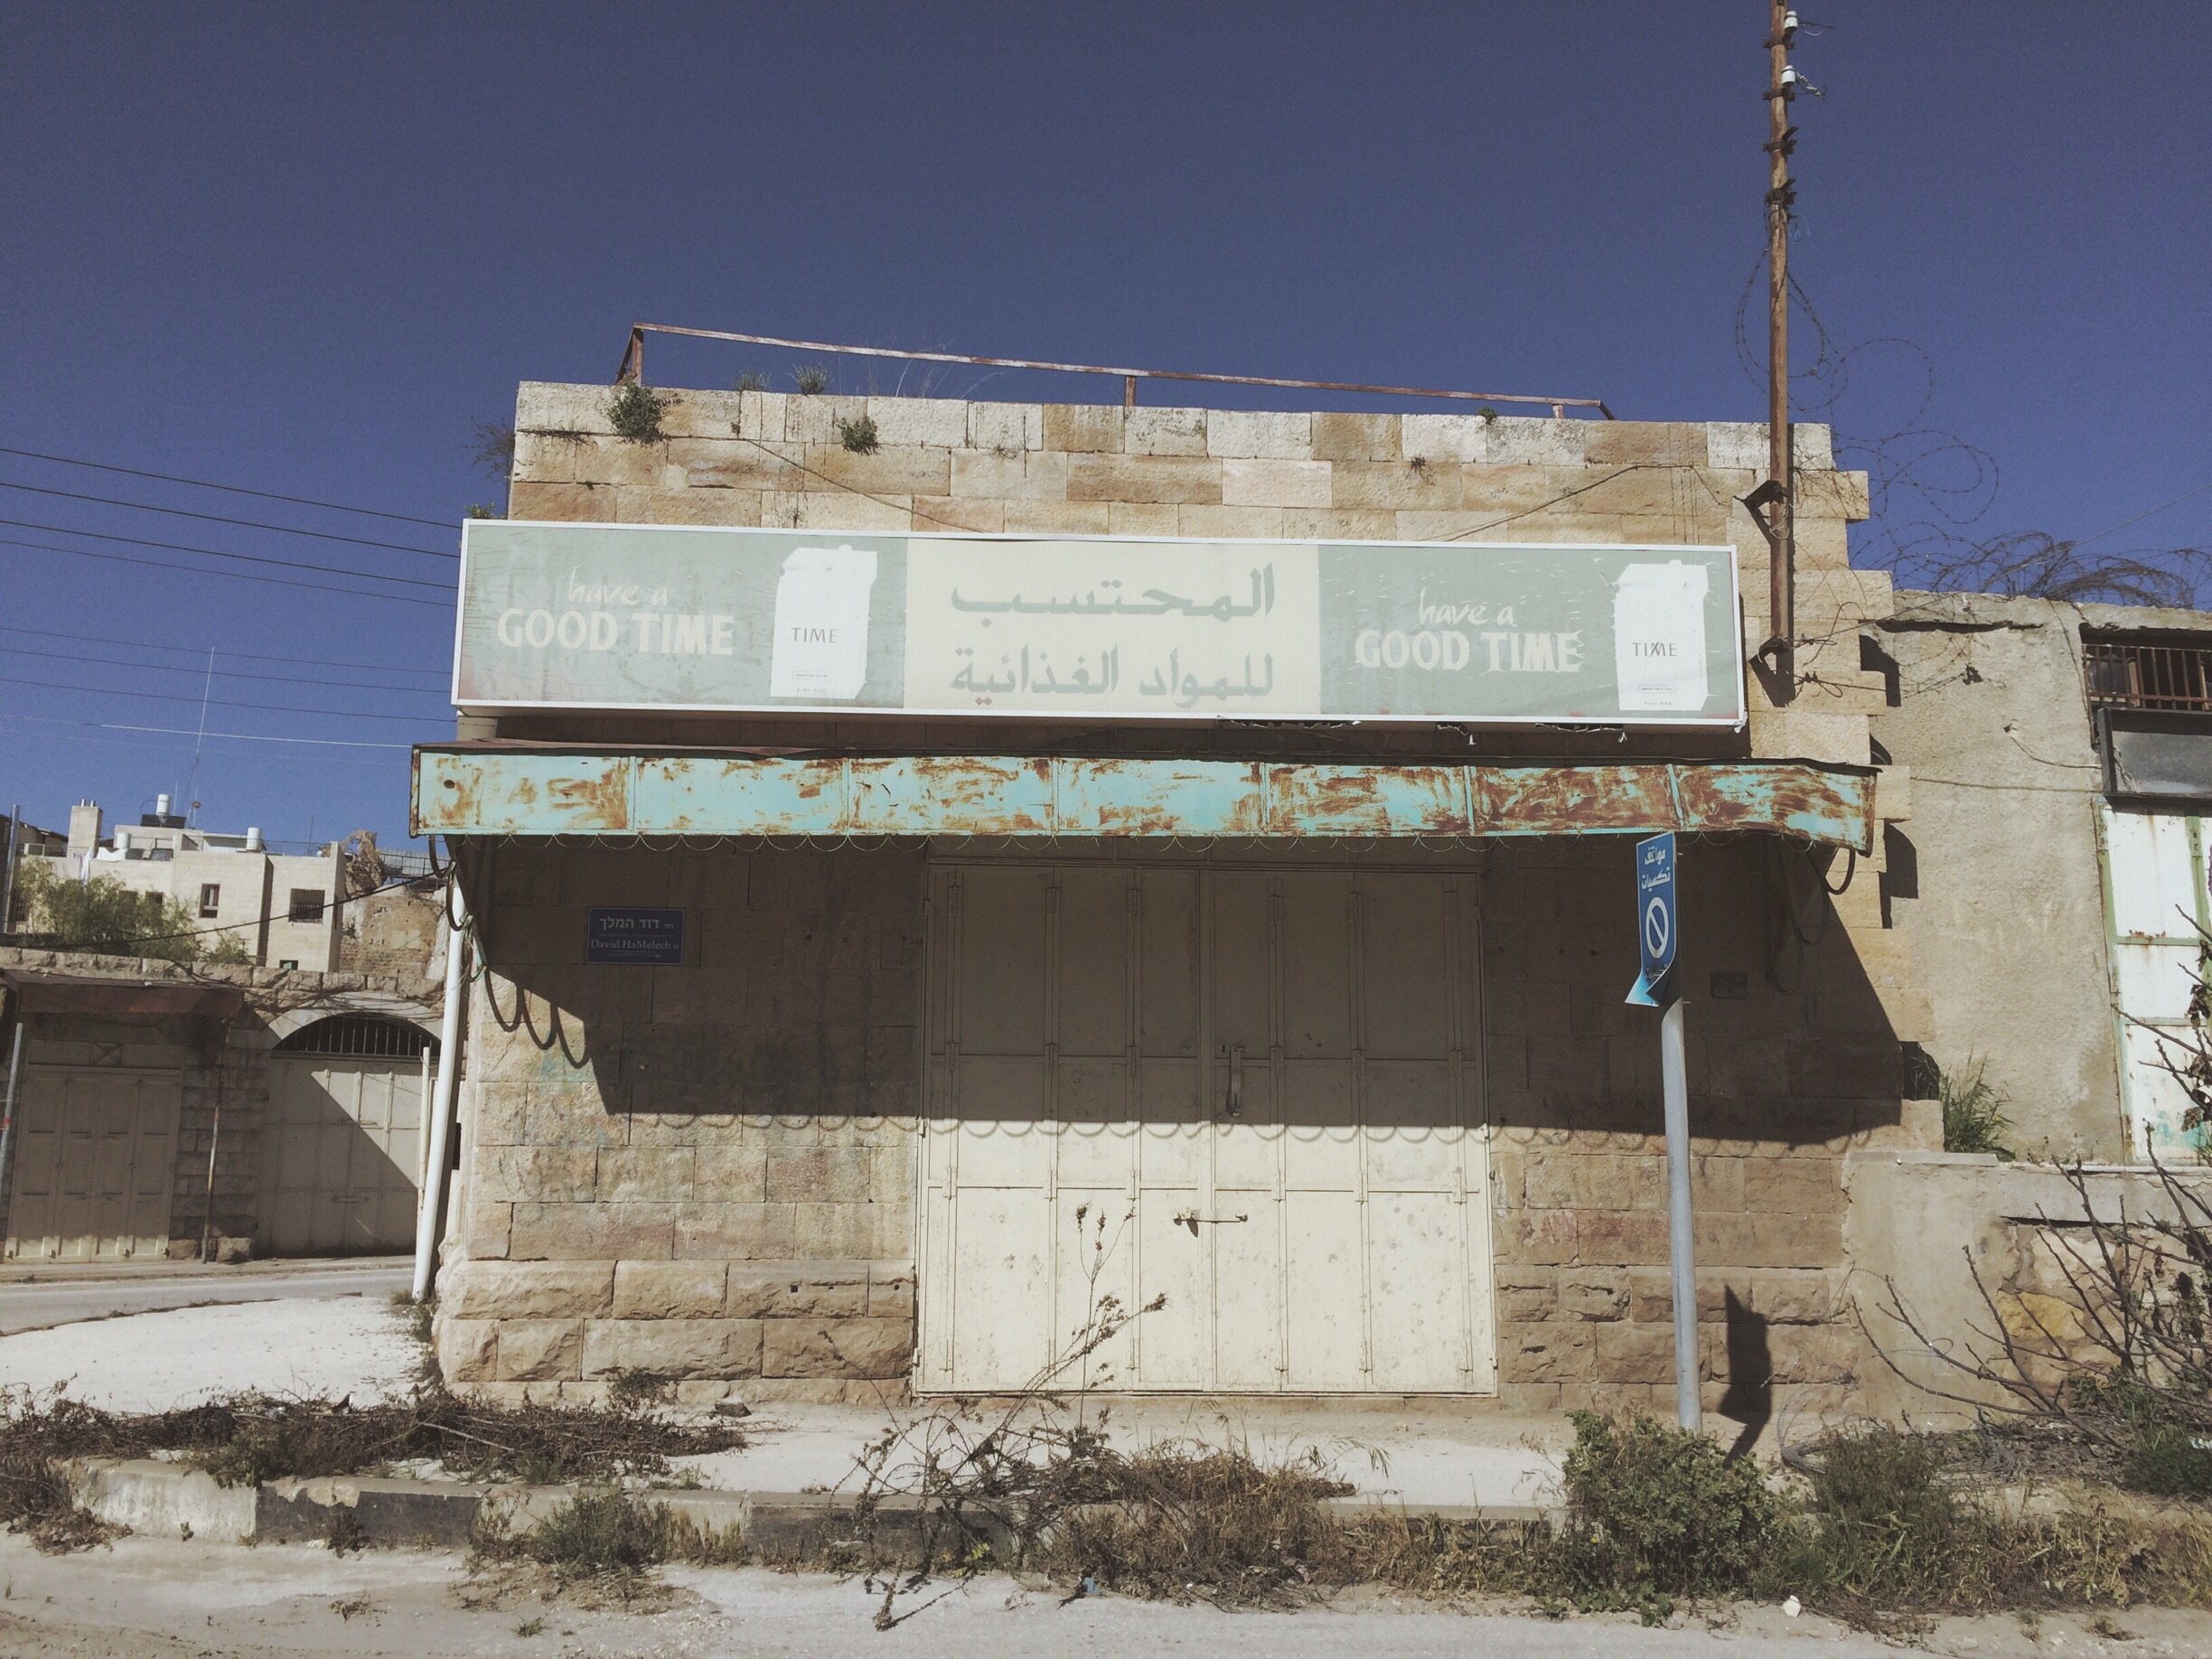 """Have A Good Time"" in Hebron."